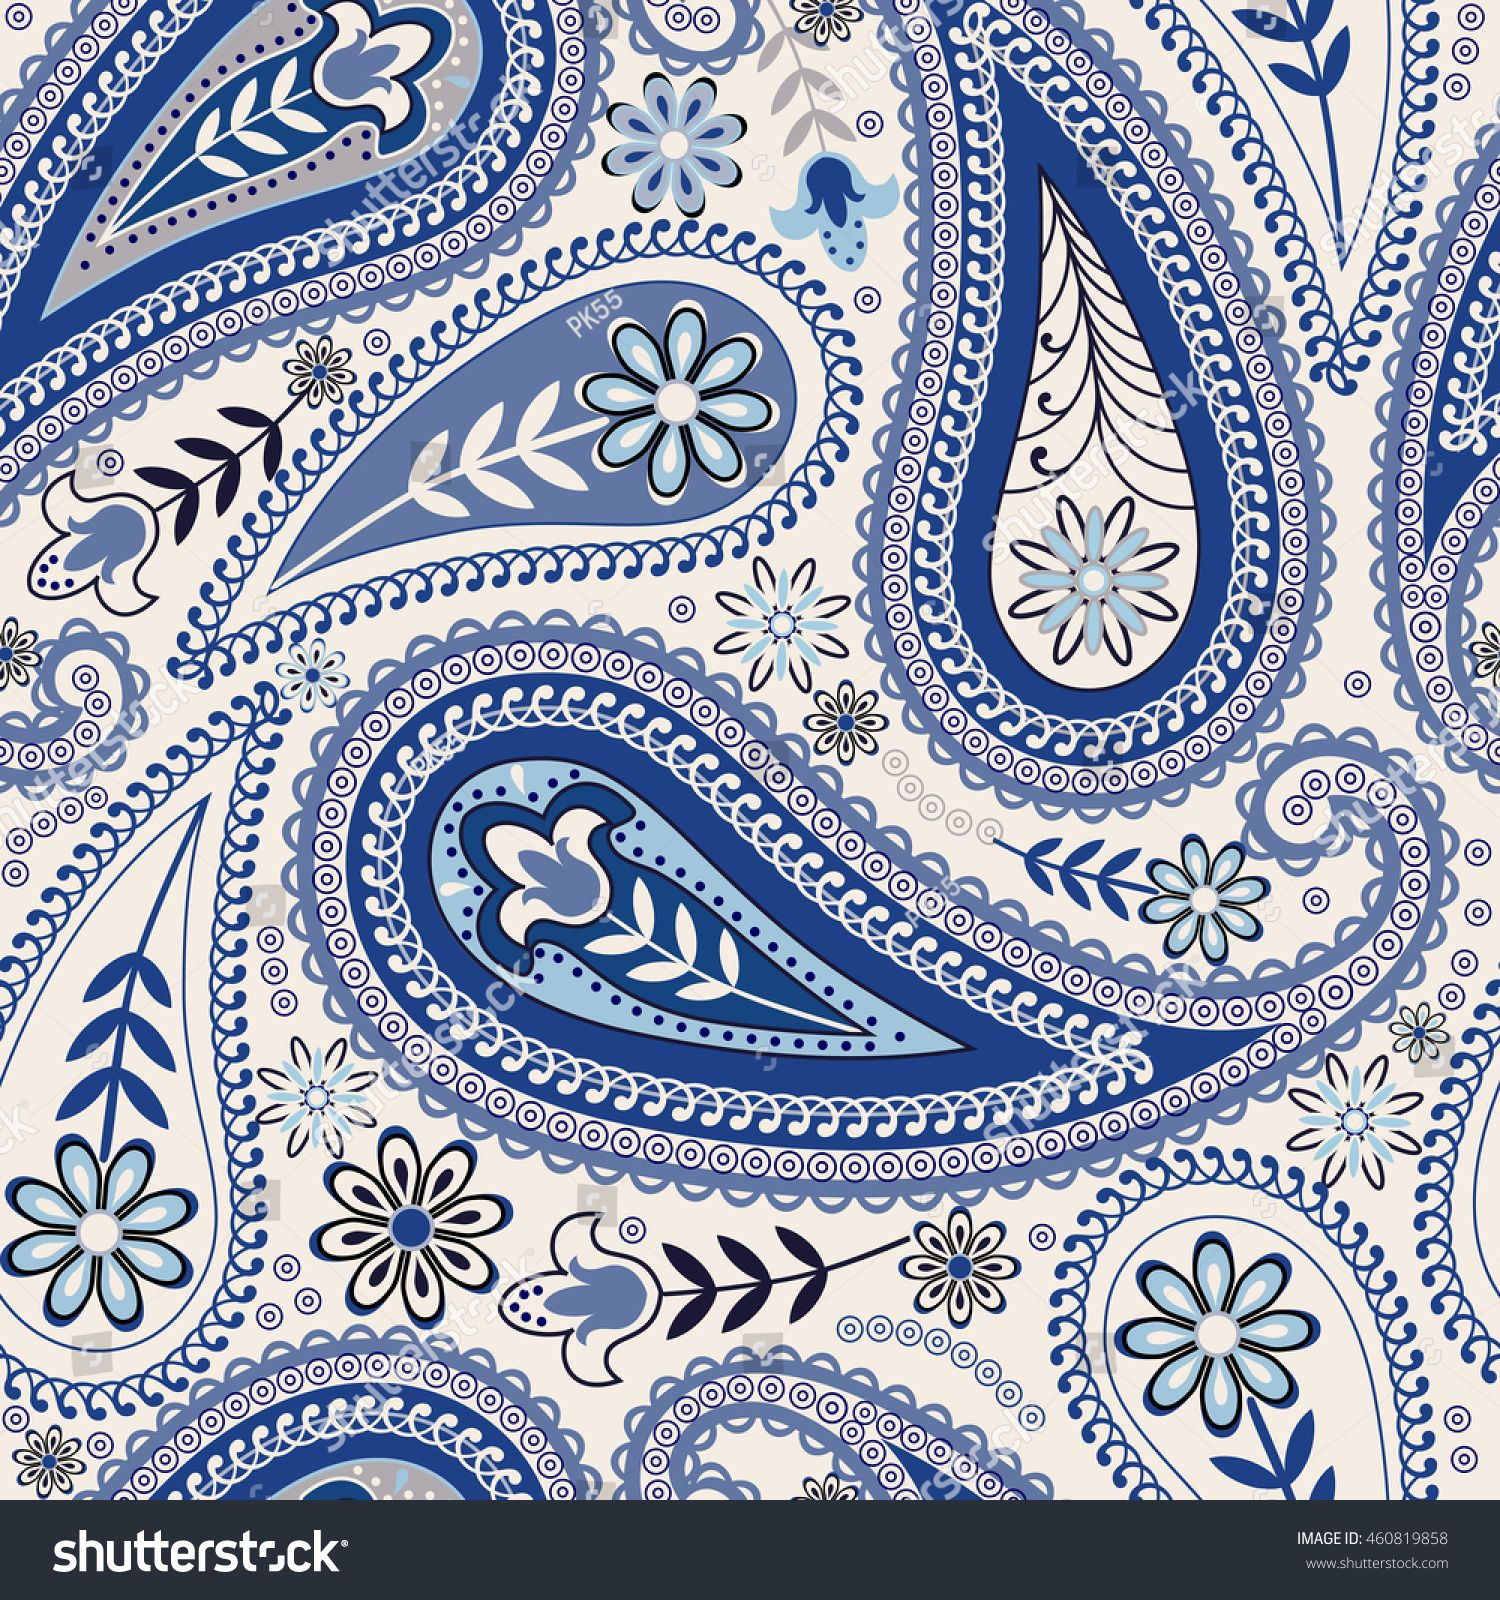 Seamless Paisley background. Vintage hand drawn vector pattern. 手のスケッチ